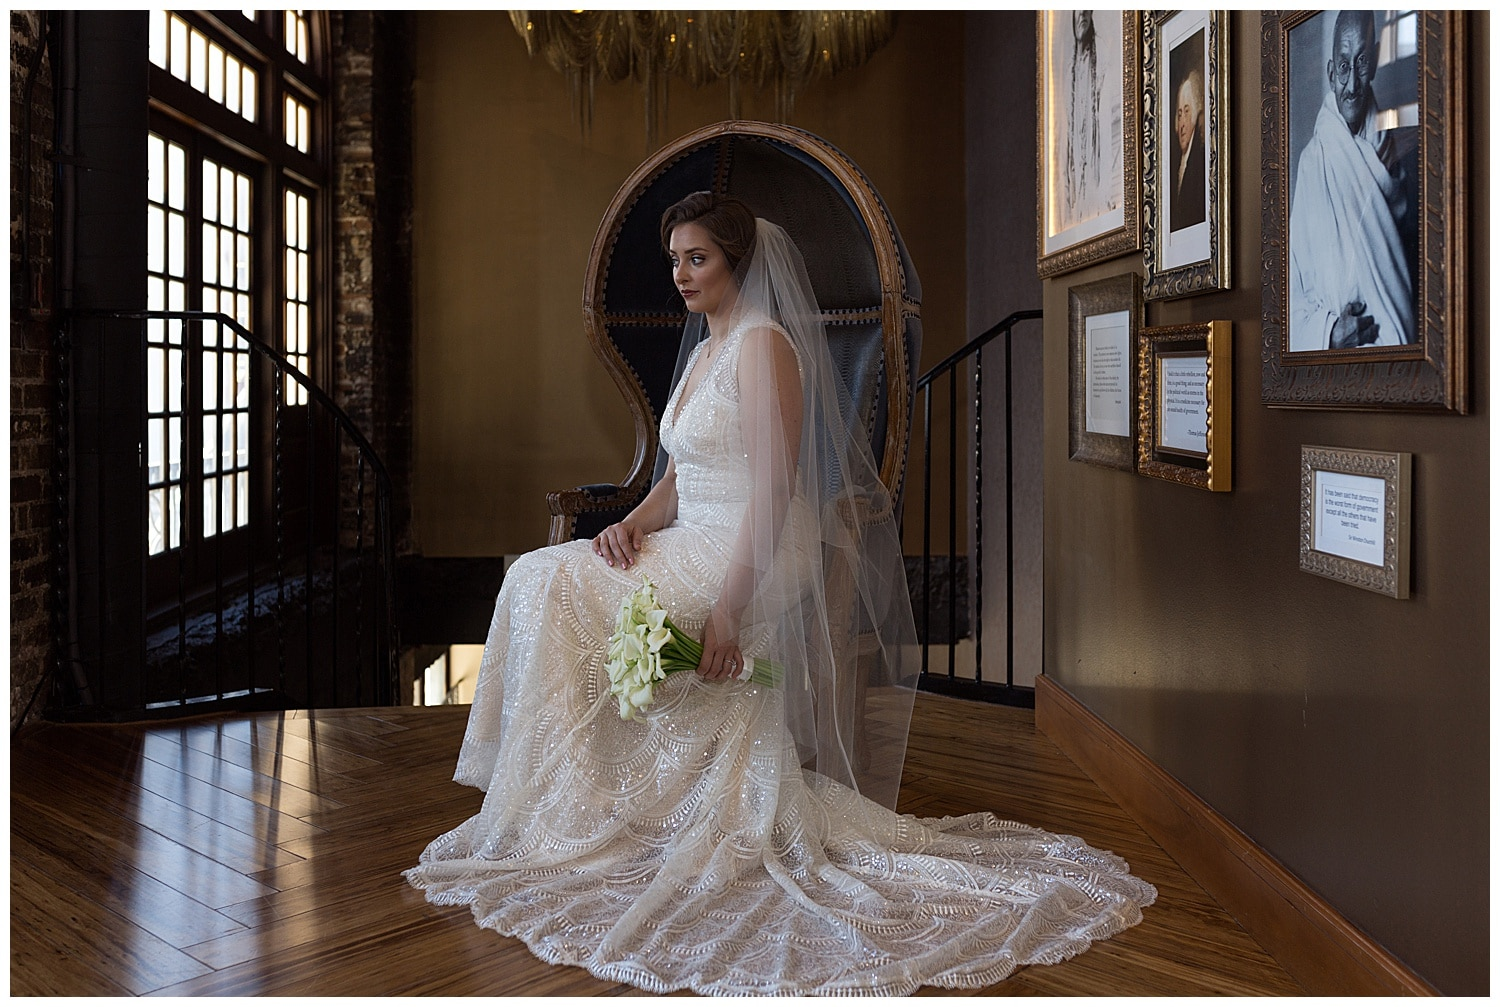 Houston Bridal Photographer | Katy's Bridal Portraits